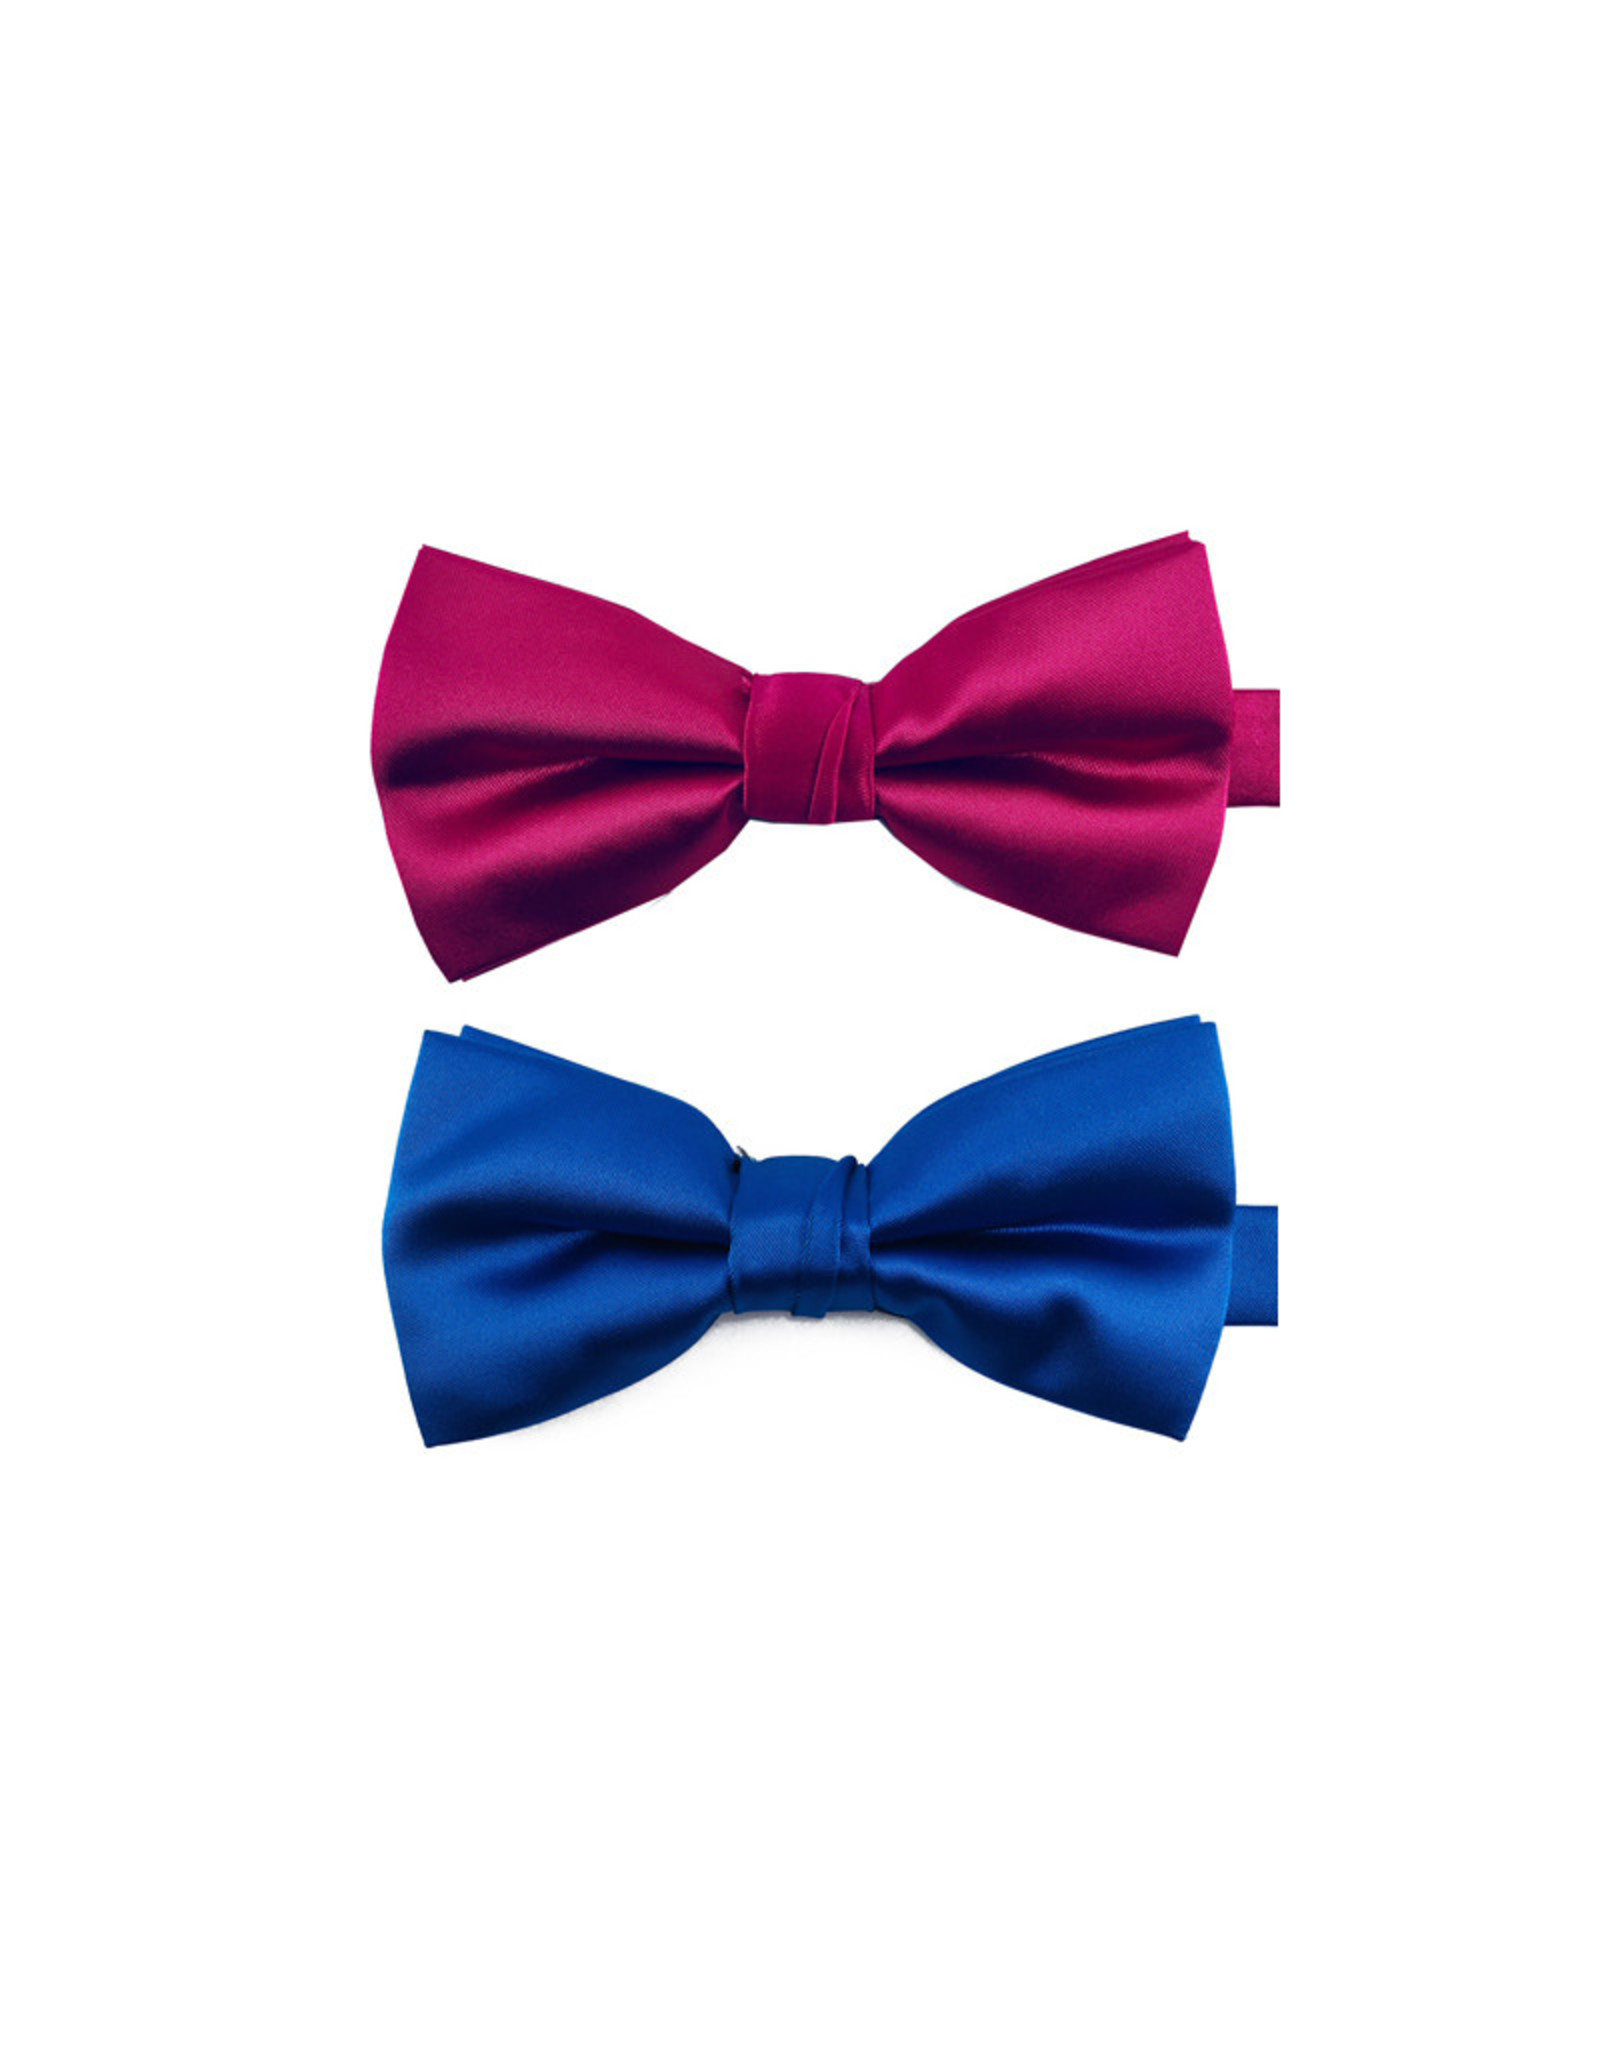 Knotz Bow Ties (Fuschia or Royal Blue)